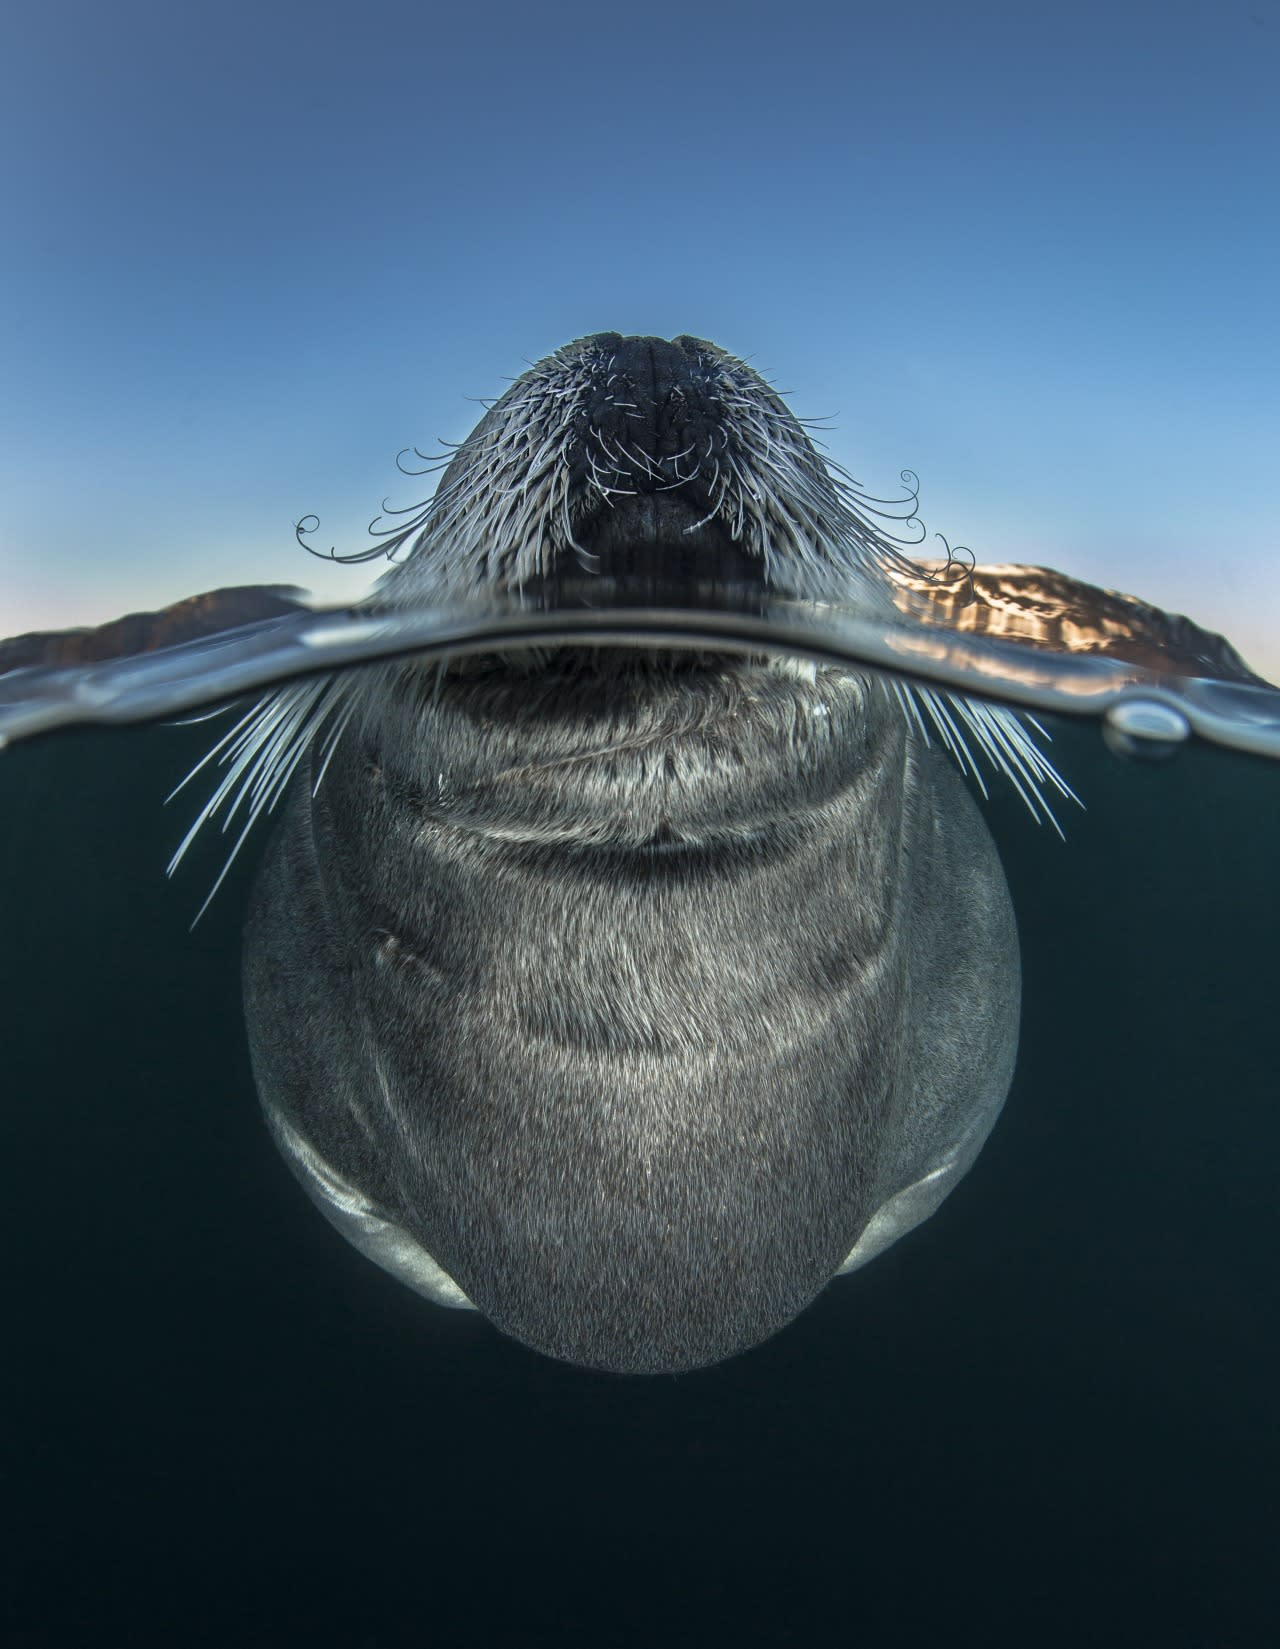 Photos: Highlights from the annual  Wildlife Photographer of the Year competition